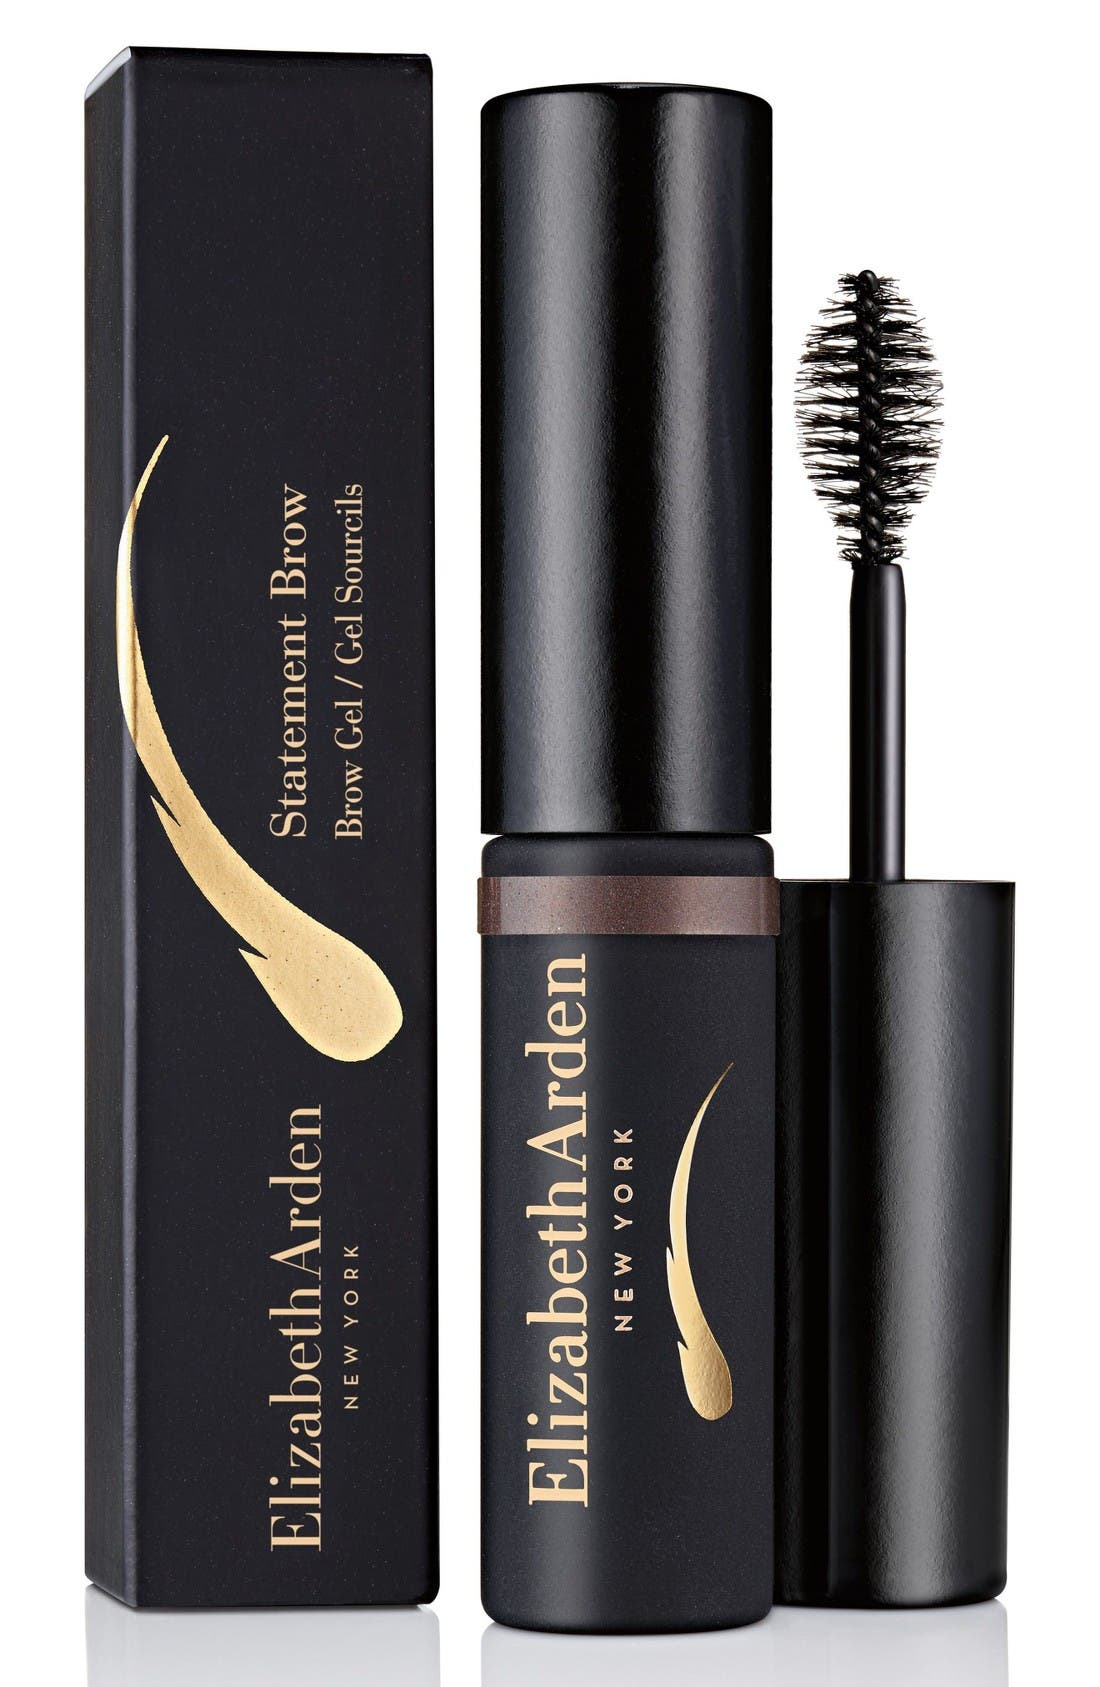 Elizabeth Arden Eyes Wide Open Statement Brow Defining Gel